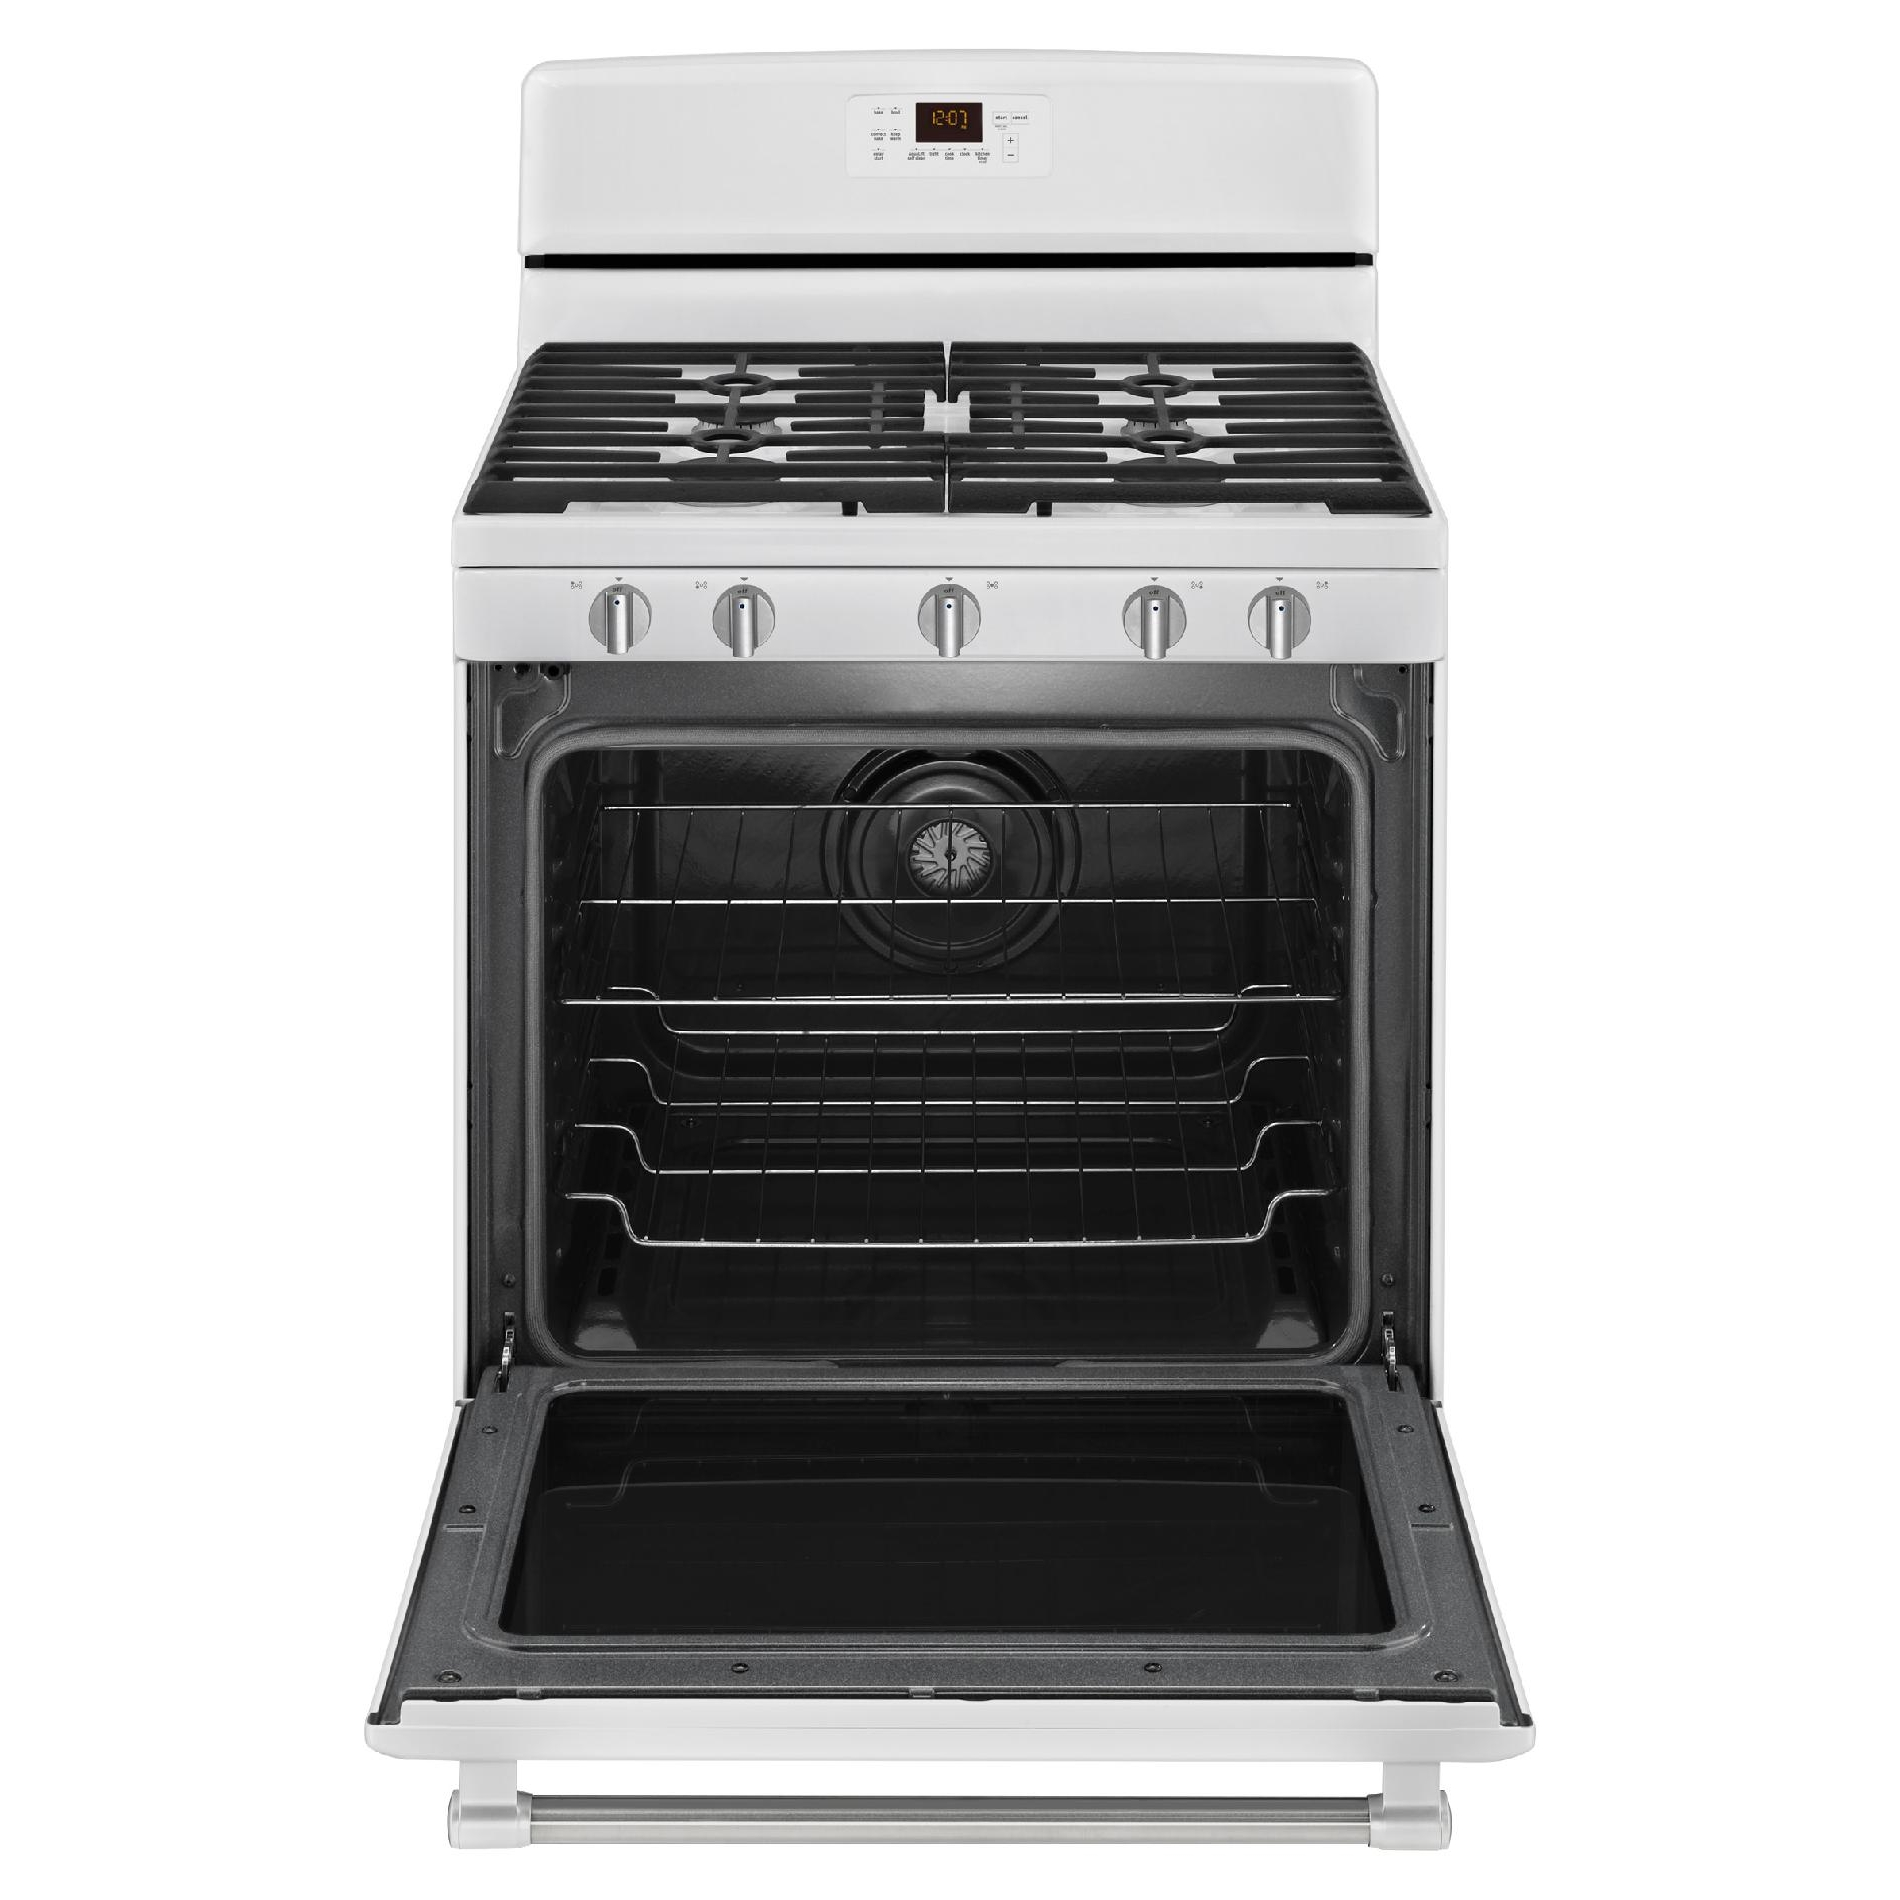 Maytag MGR8700DH 5.8 cu. ft. Gas Range w/ 5th Burner - White w/ Stainless Handle